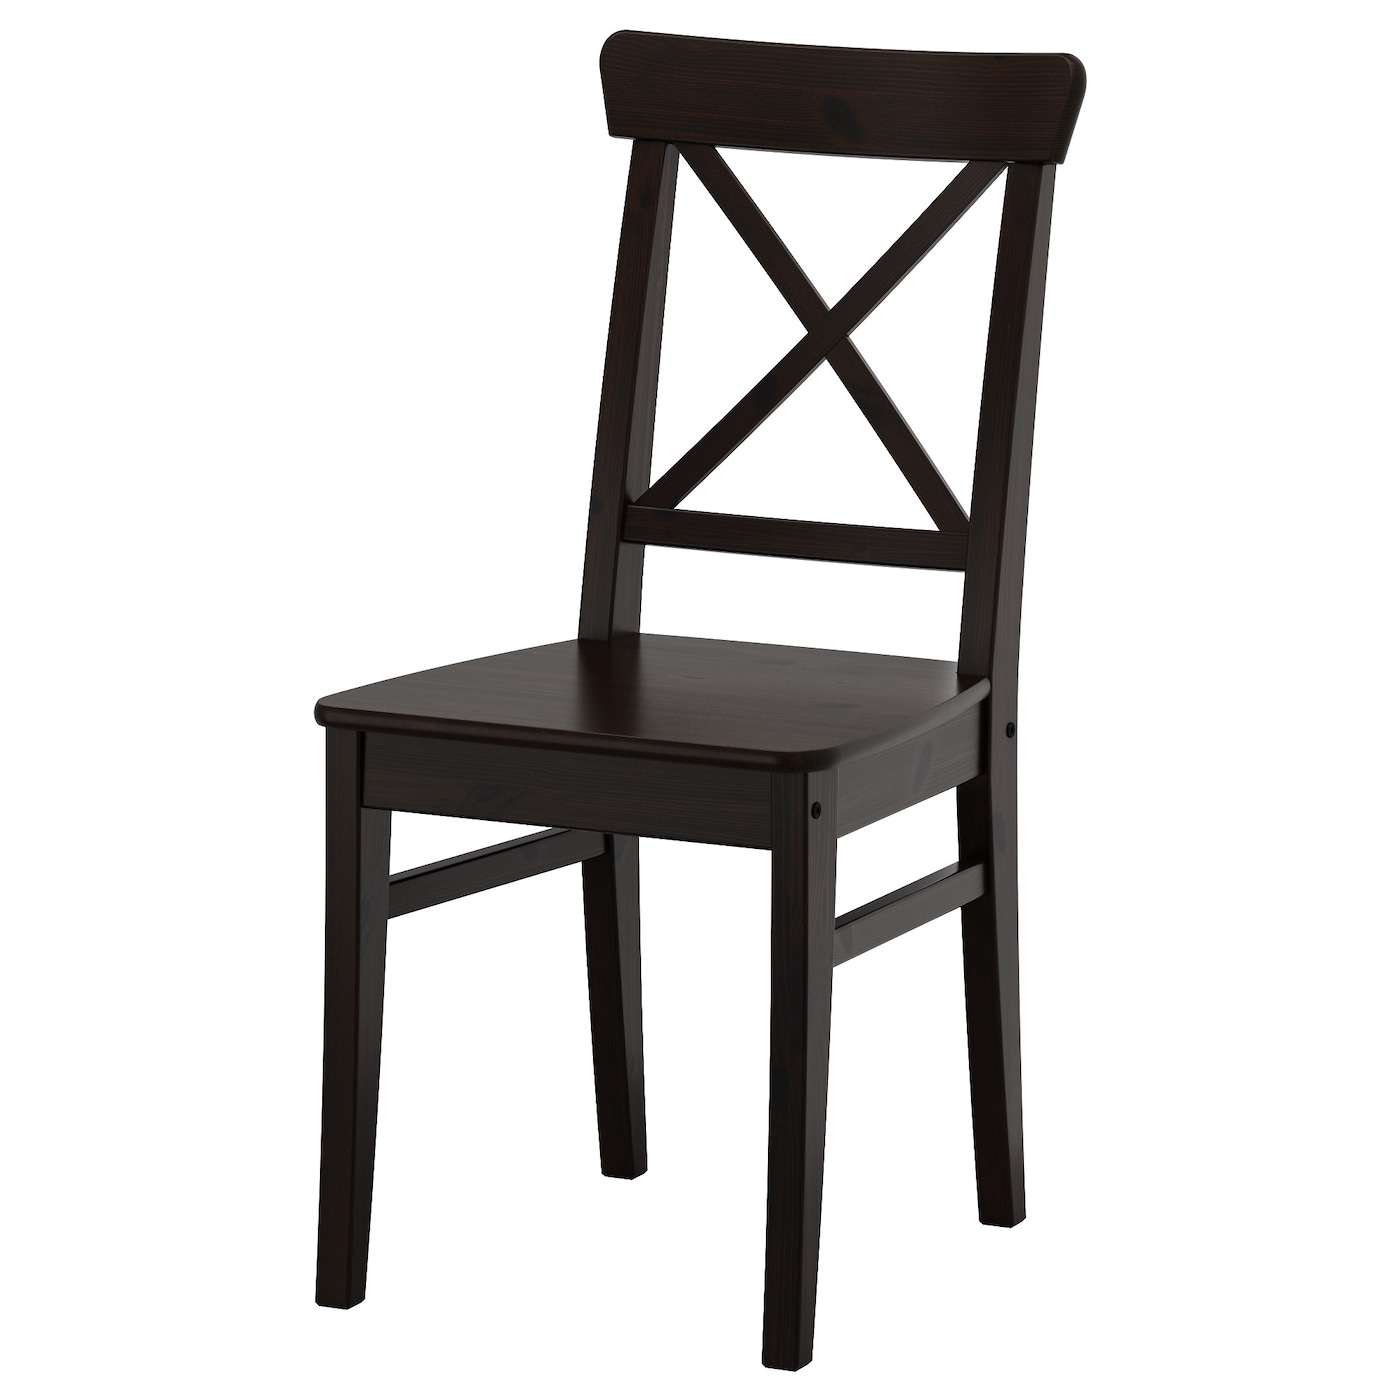 Ingolf chair brown black ikea for Chaise noire et bois